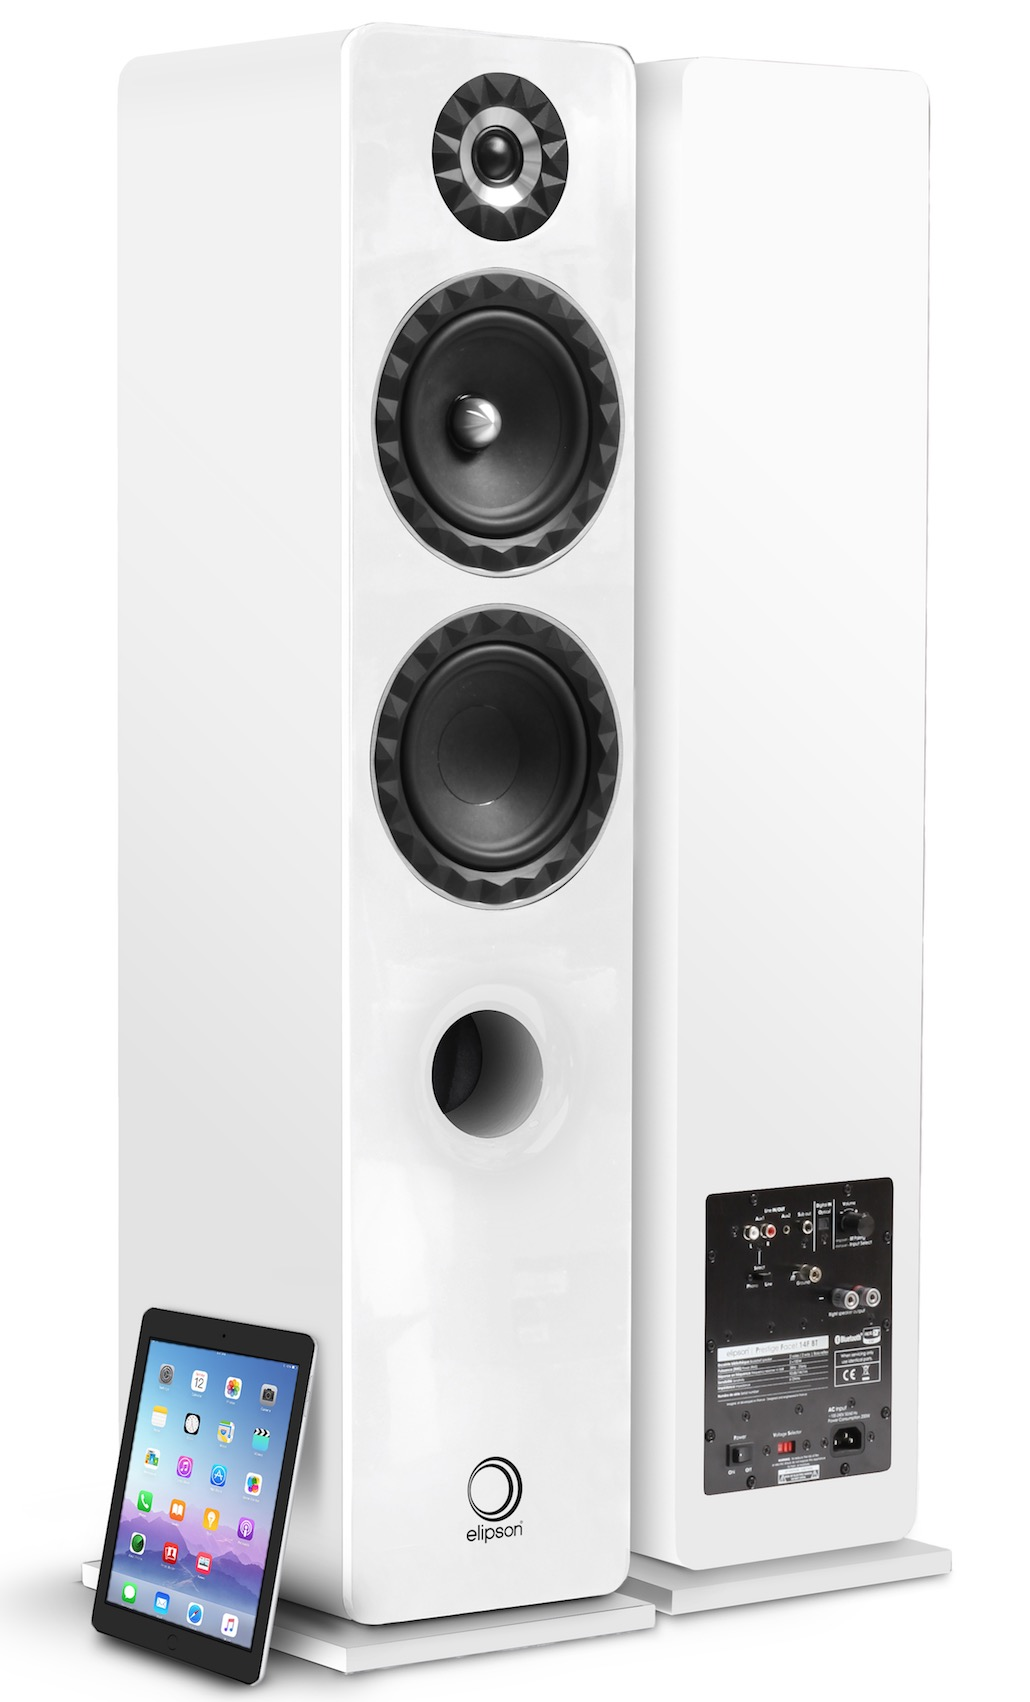 Elipson Facet speakers feature Chromecast